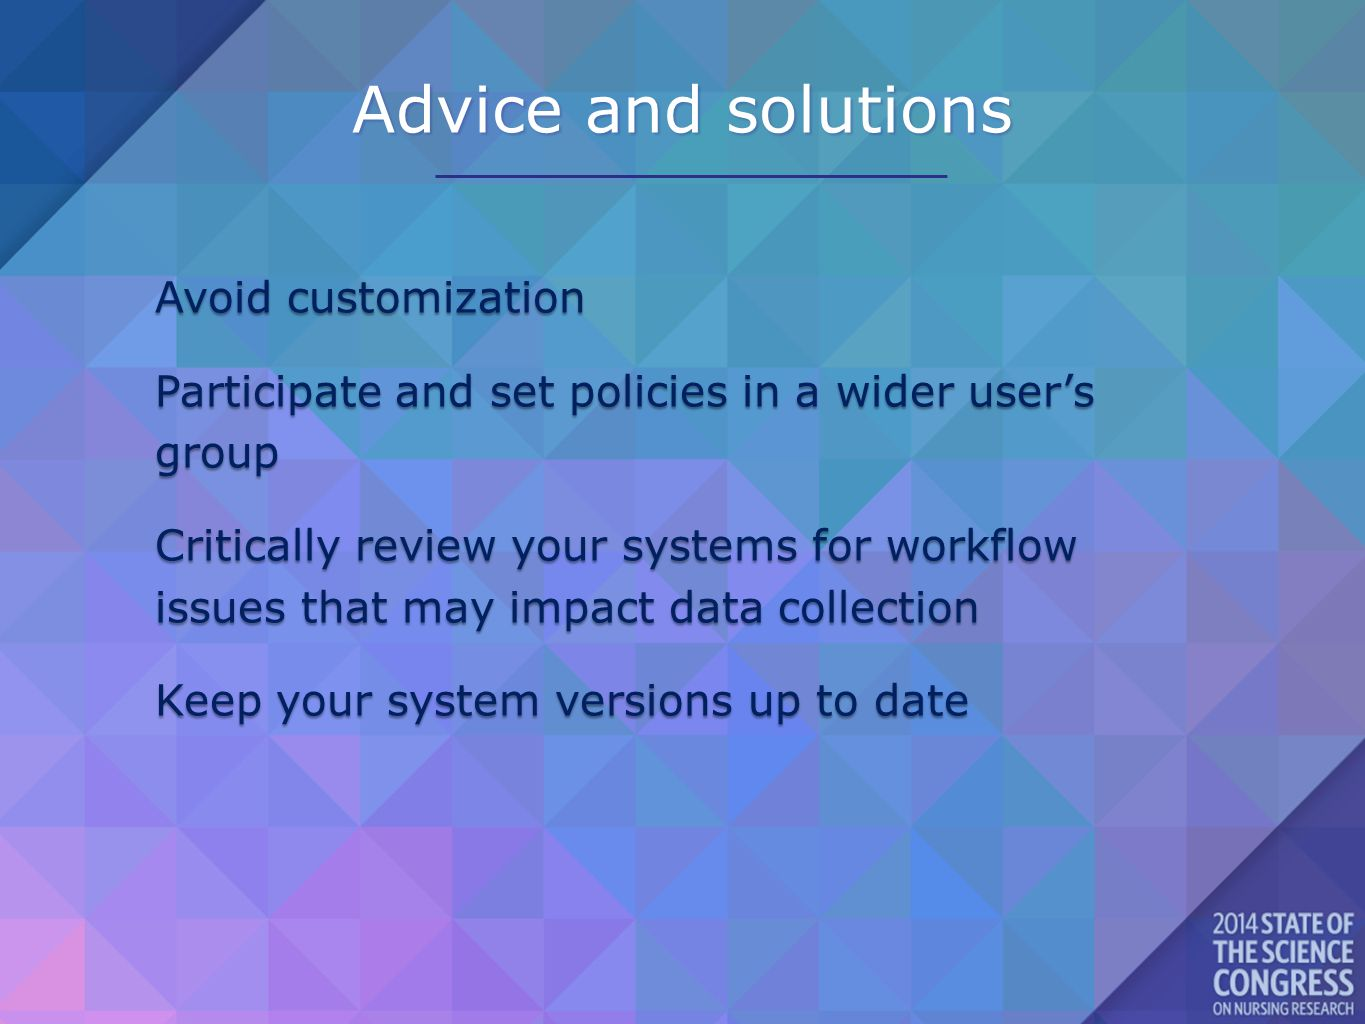 Advice and solutions Avoid customization Participate and set policies in a wider user's group Critically review your systems for workflow issues that may impact data collection Keep your system versions up to date